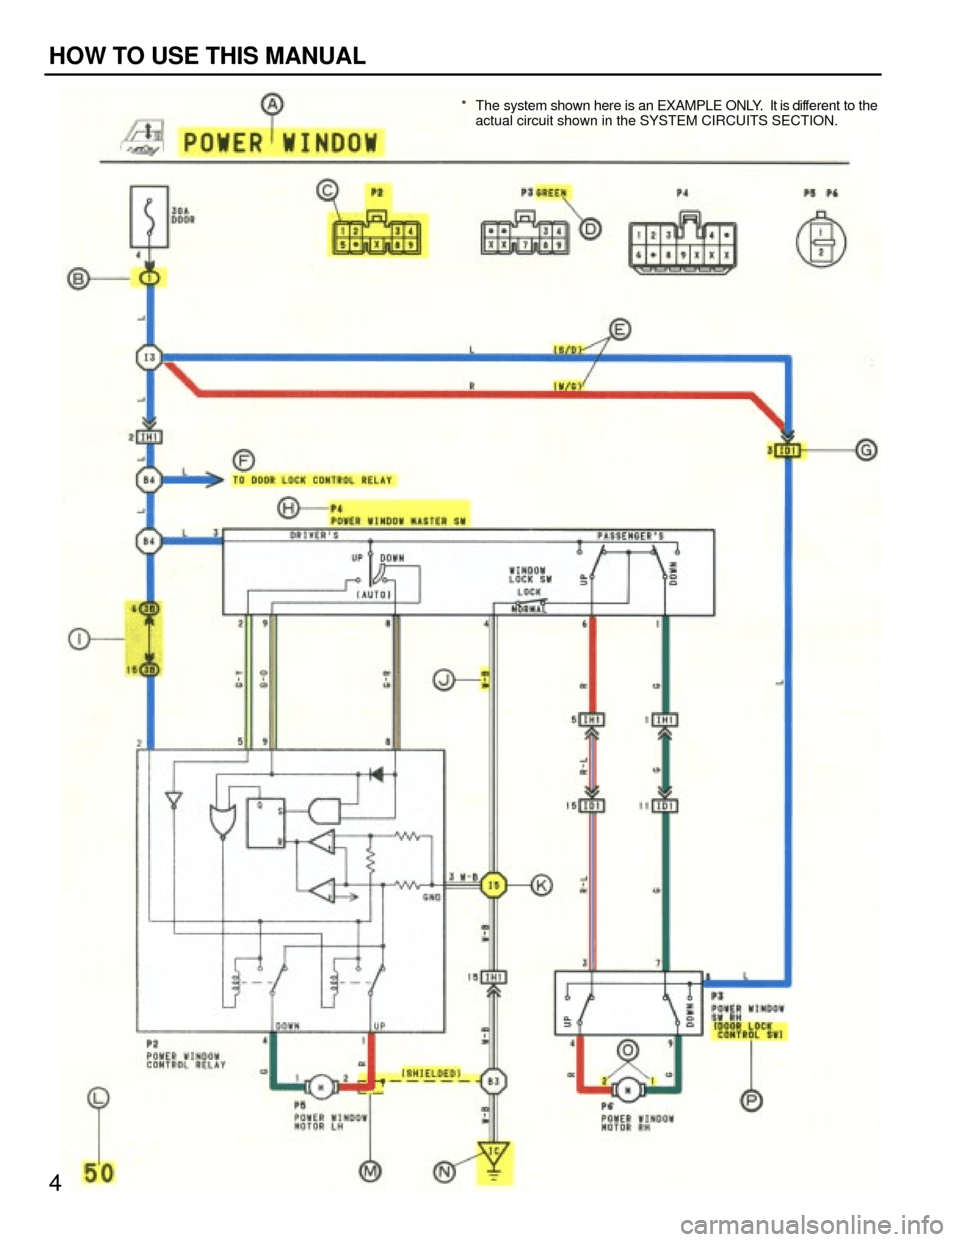 hight resolution of  4 g wiring diagrams workshop manual rh carmanualsonline info at toyota camry 1994 xv10 4 g wiring diagrams workshop manual page 4 for 2002 prius wiring